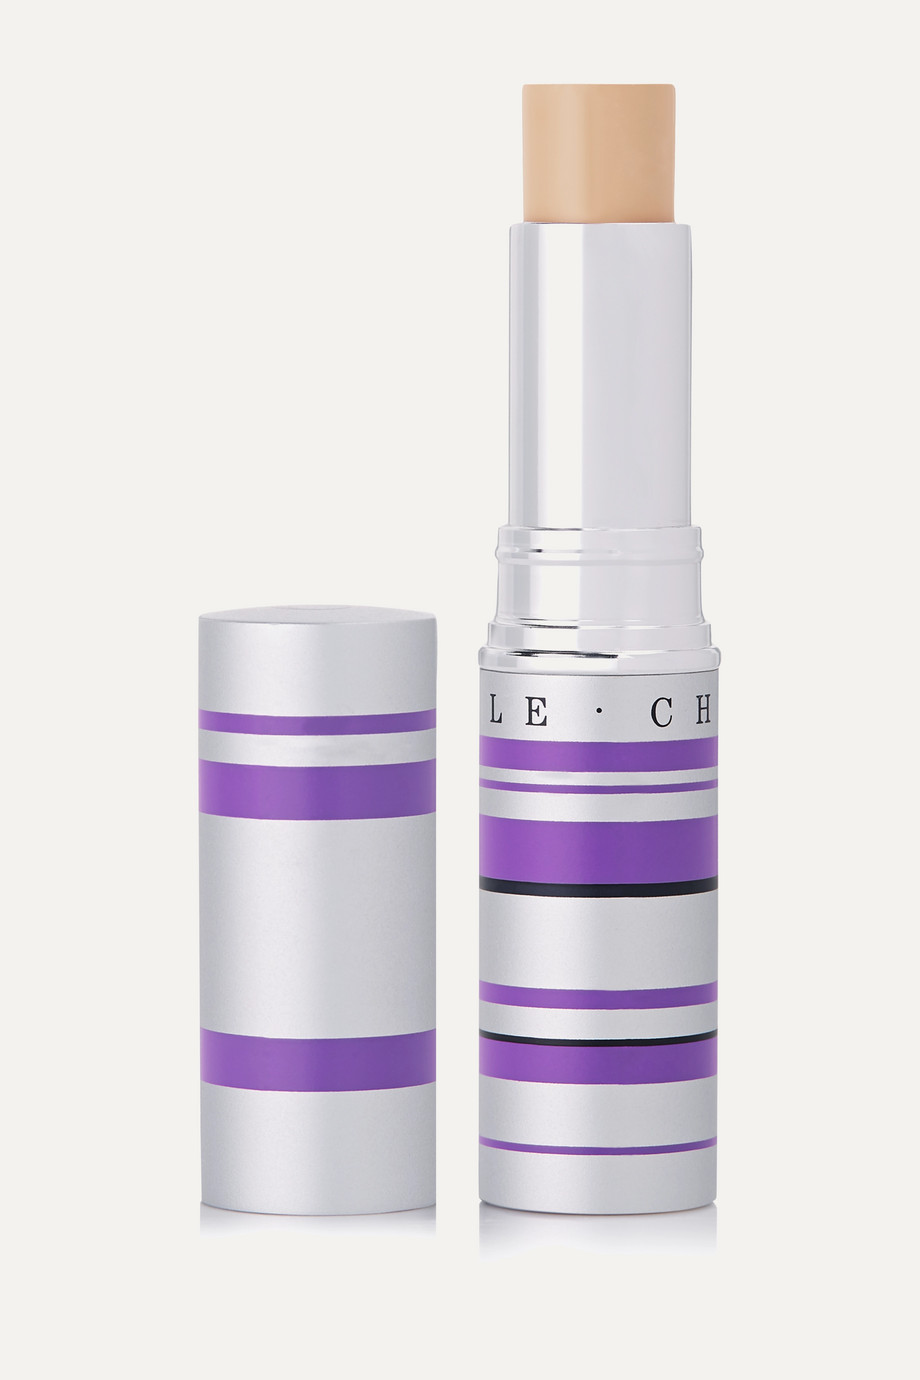 Chantecaille Real Skin + Eye and Face Stick - 2